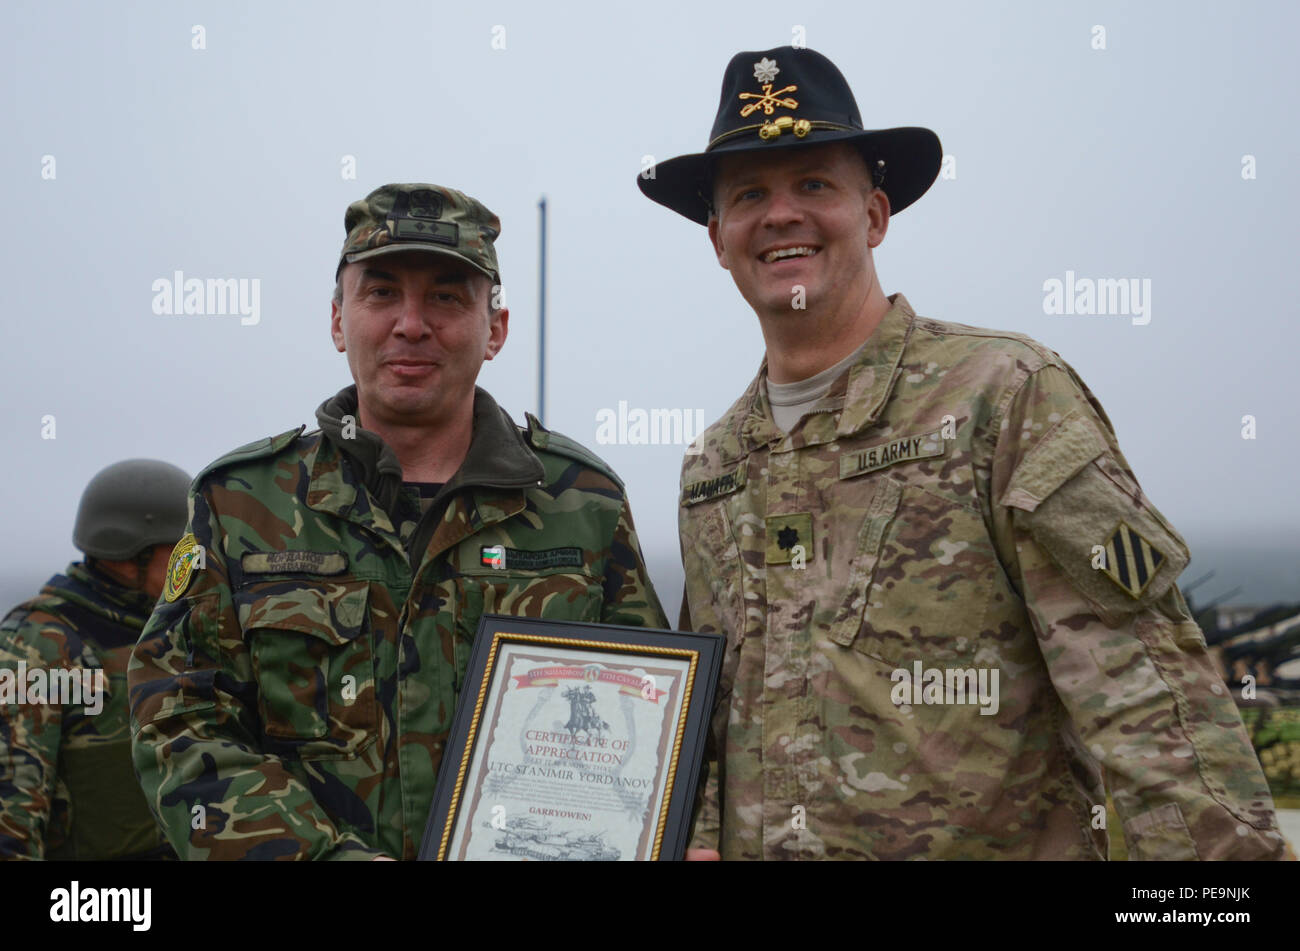 U.S. Army Lt. Col. Christopher Mahaffey (right), the commander of 5th Squadron, 7th Cavalry Regiment, 3rd Infantry Division, stationed at Fort Stewart, Ga., presents Bulgarian Lt. Col. Stanimir Yordanov (left), of 61st Mechanized Brigade, a certificate of appreciation during the closing ceremony of Exercise Peace Sentinel at Novo Selo Training Center, Bulgaria, Nov. 24, 2015. (U.S. Army photo by Staff Sgt. Steven M. Colvin/Released) - Stock Image